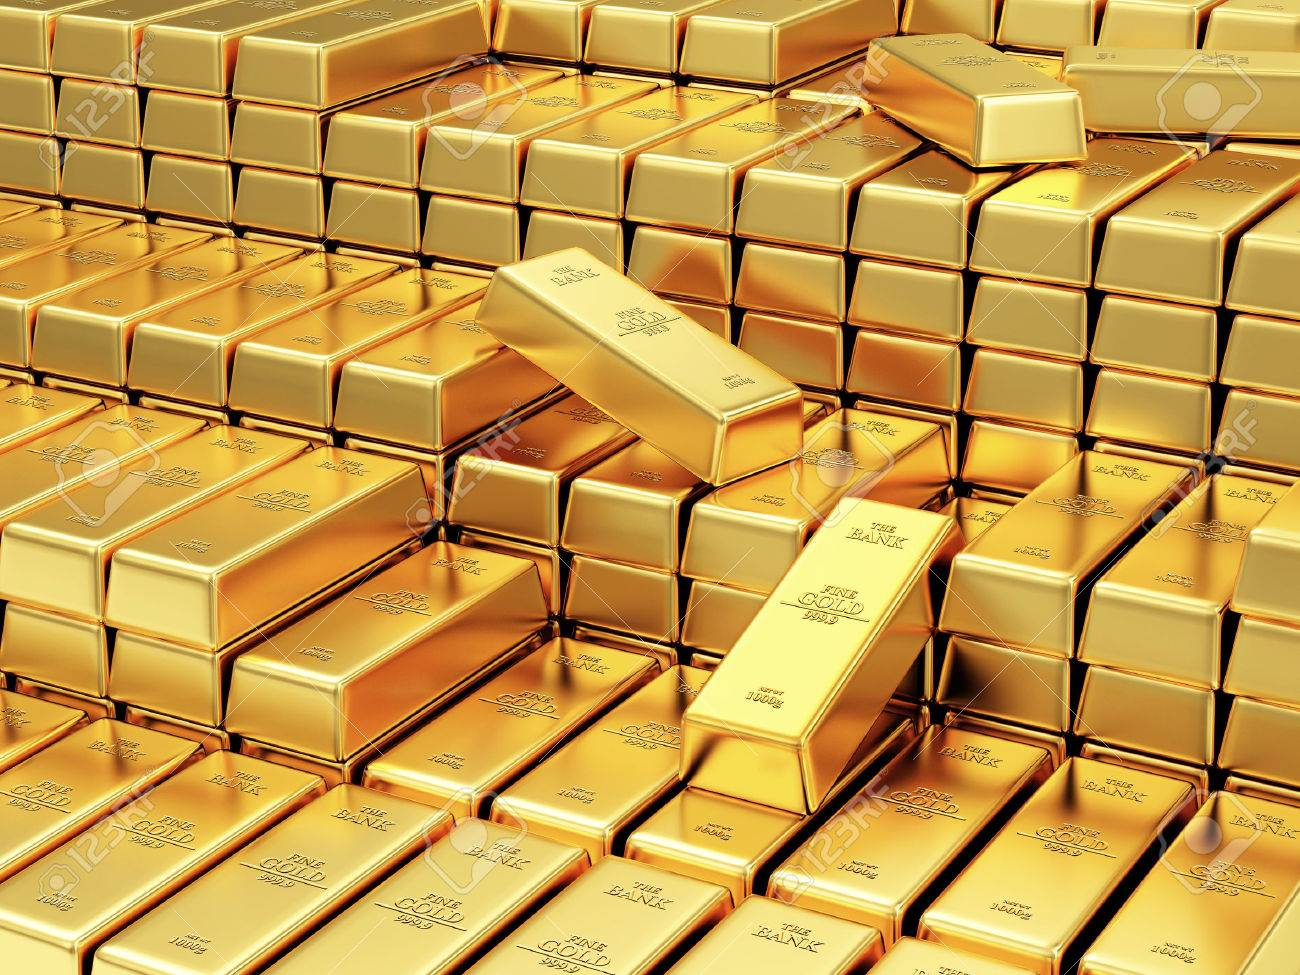 Business Financial Bank Gold Reserves Concept Stack Of Golden Stock Photo Picture And Royalty Free Image Image 37749241